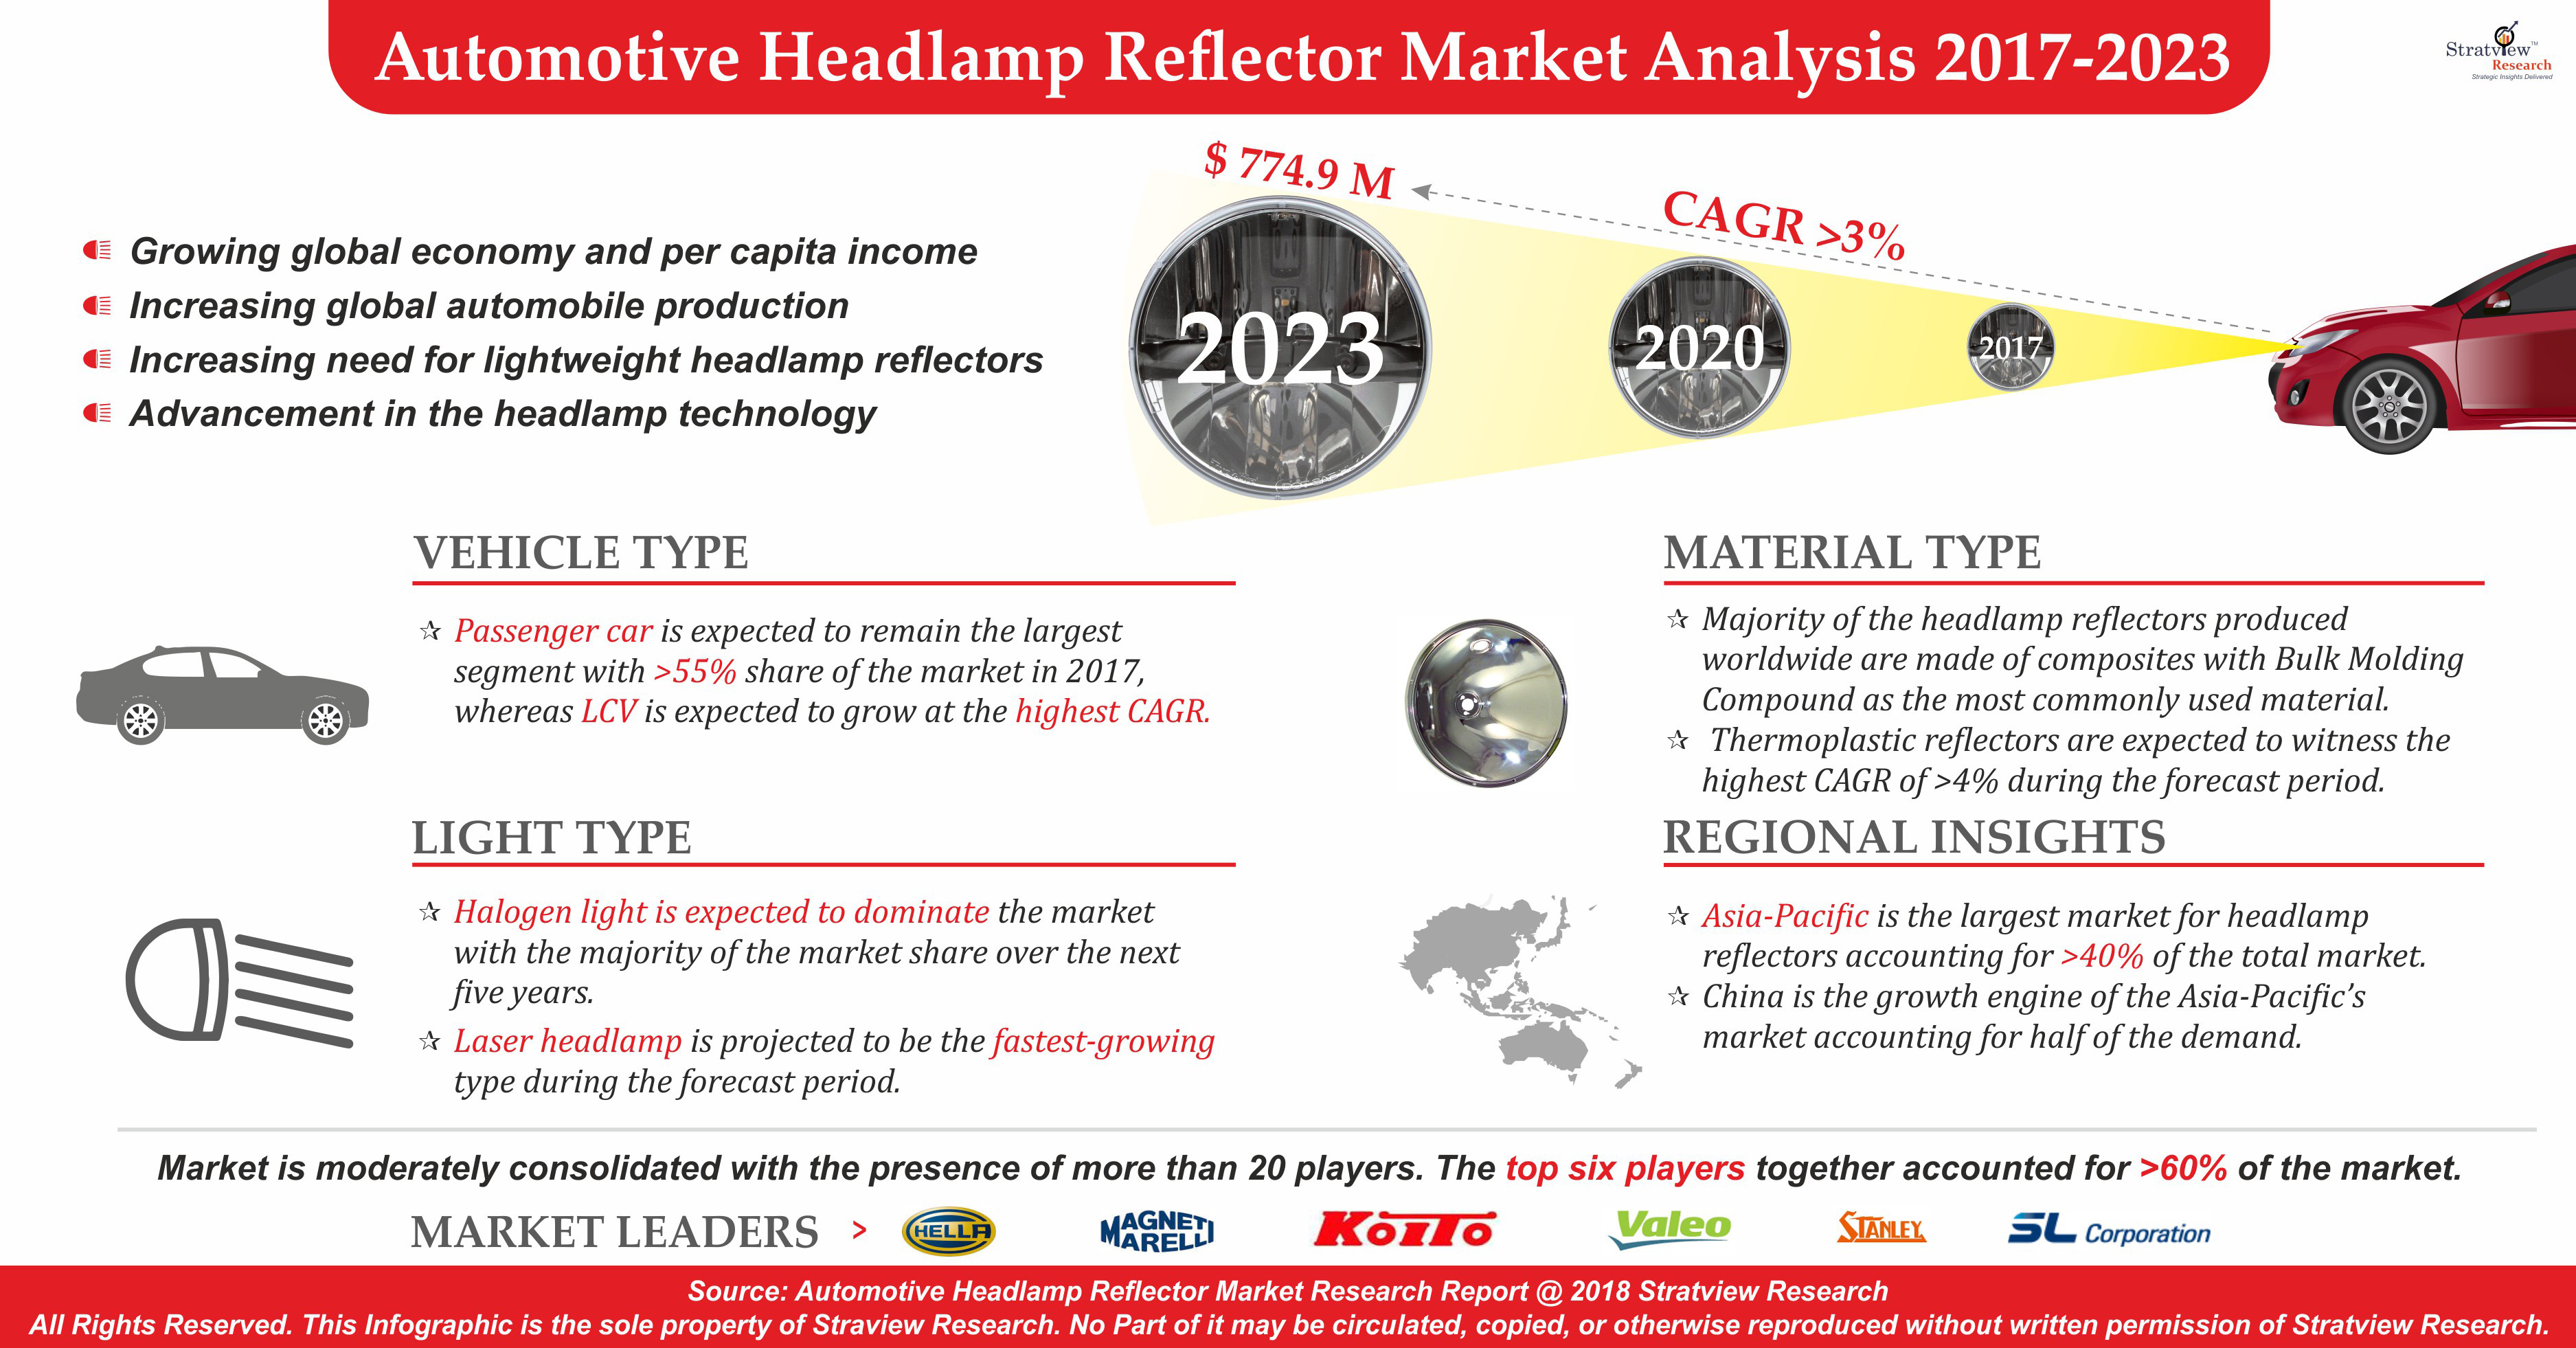 Automotive Headlamp Reflector Market